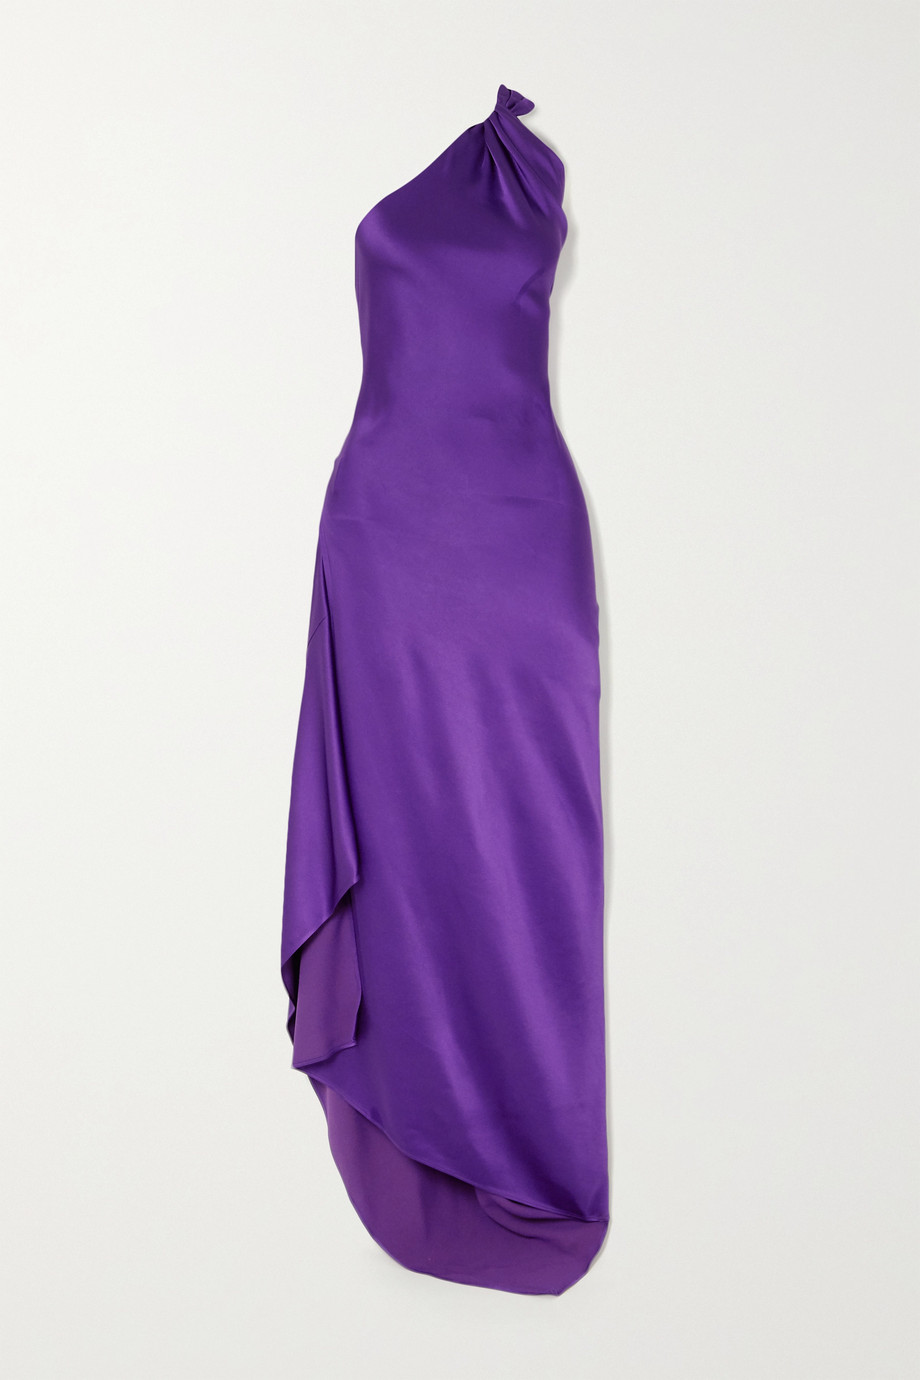 The Attico One-shoulder asymmetric hammered-satin dress